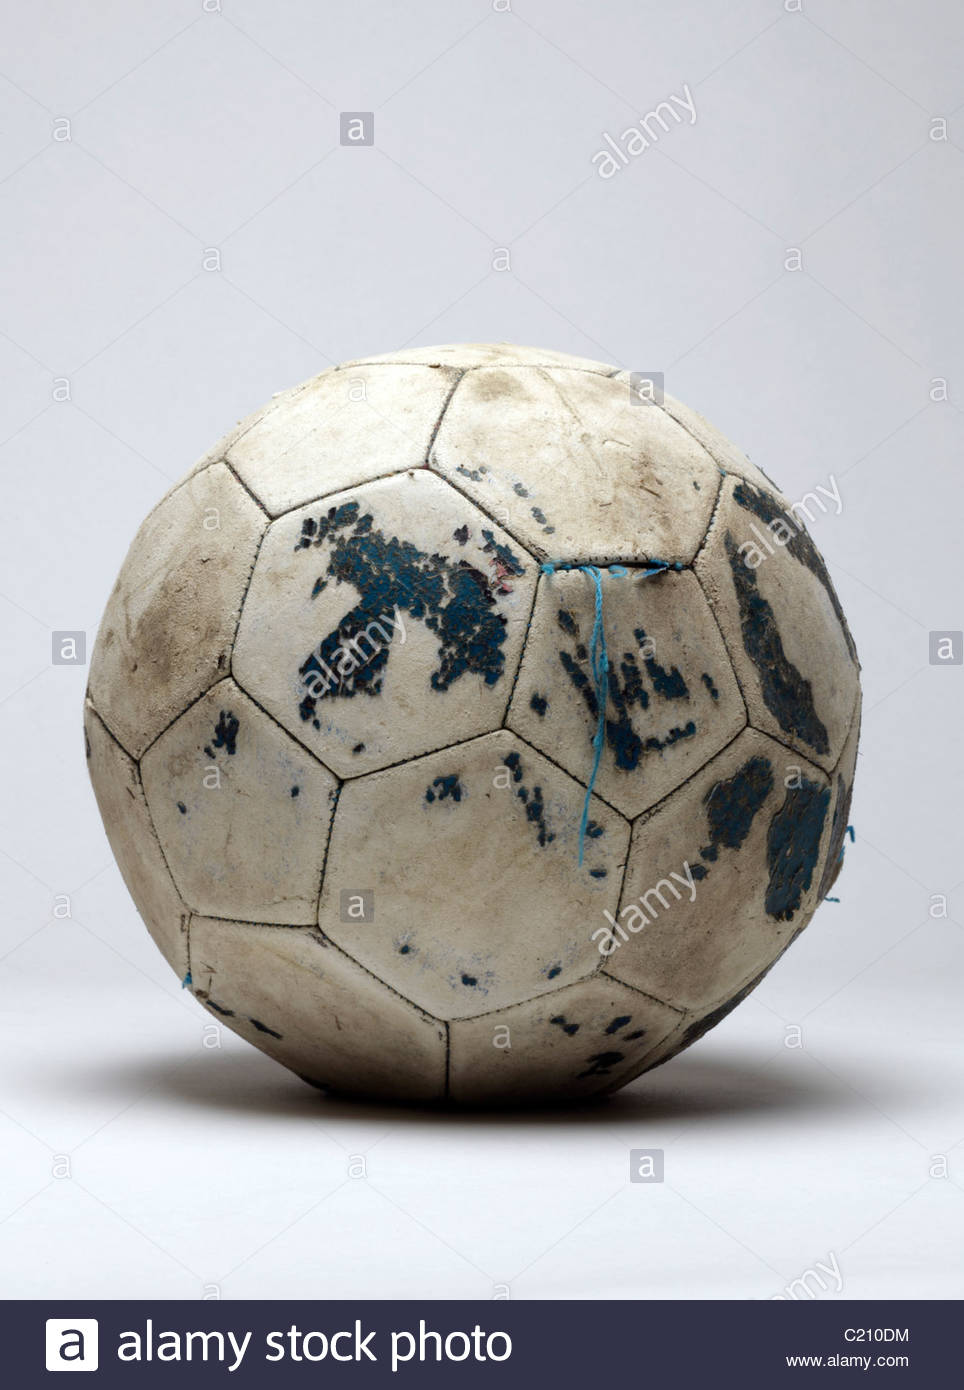 old dilapidated leather football - Stock Image